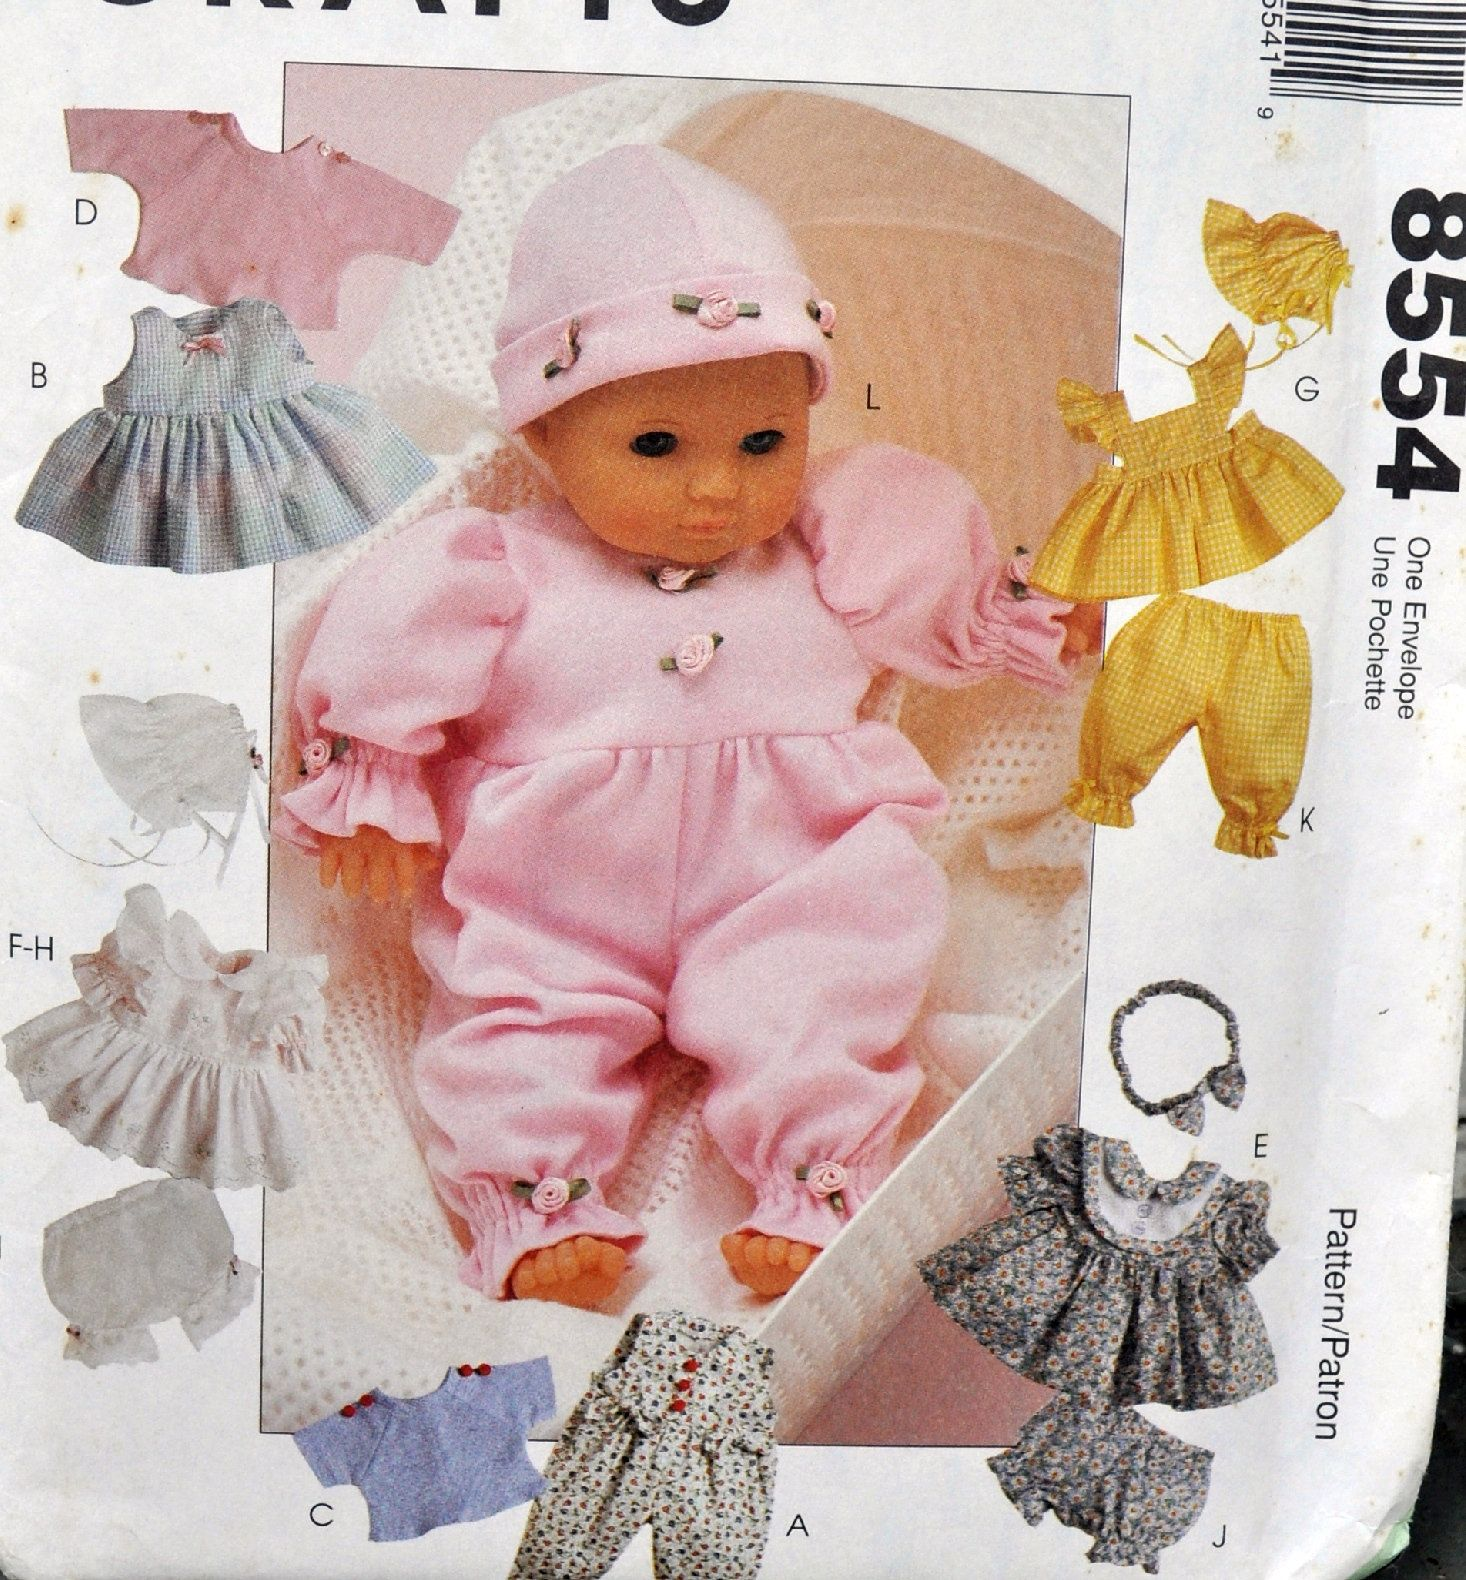 Mccall S 8554 Diy Baby Doll Clothes For 8 16 Dolls Bitty Baby Etc Kawaii Gift Idea Dress Bon Baby Doll Clothes Doll Clothes Doll Sewing Patterns